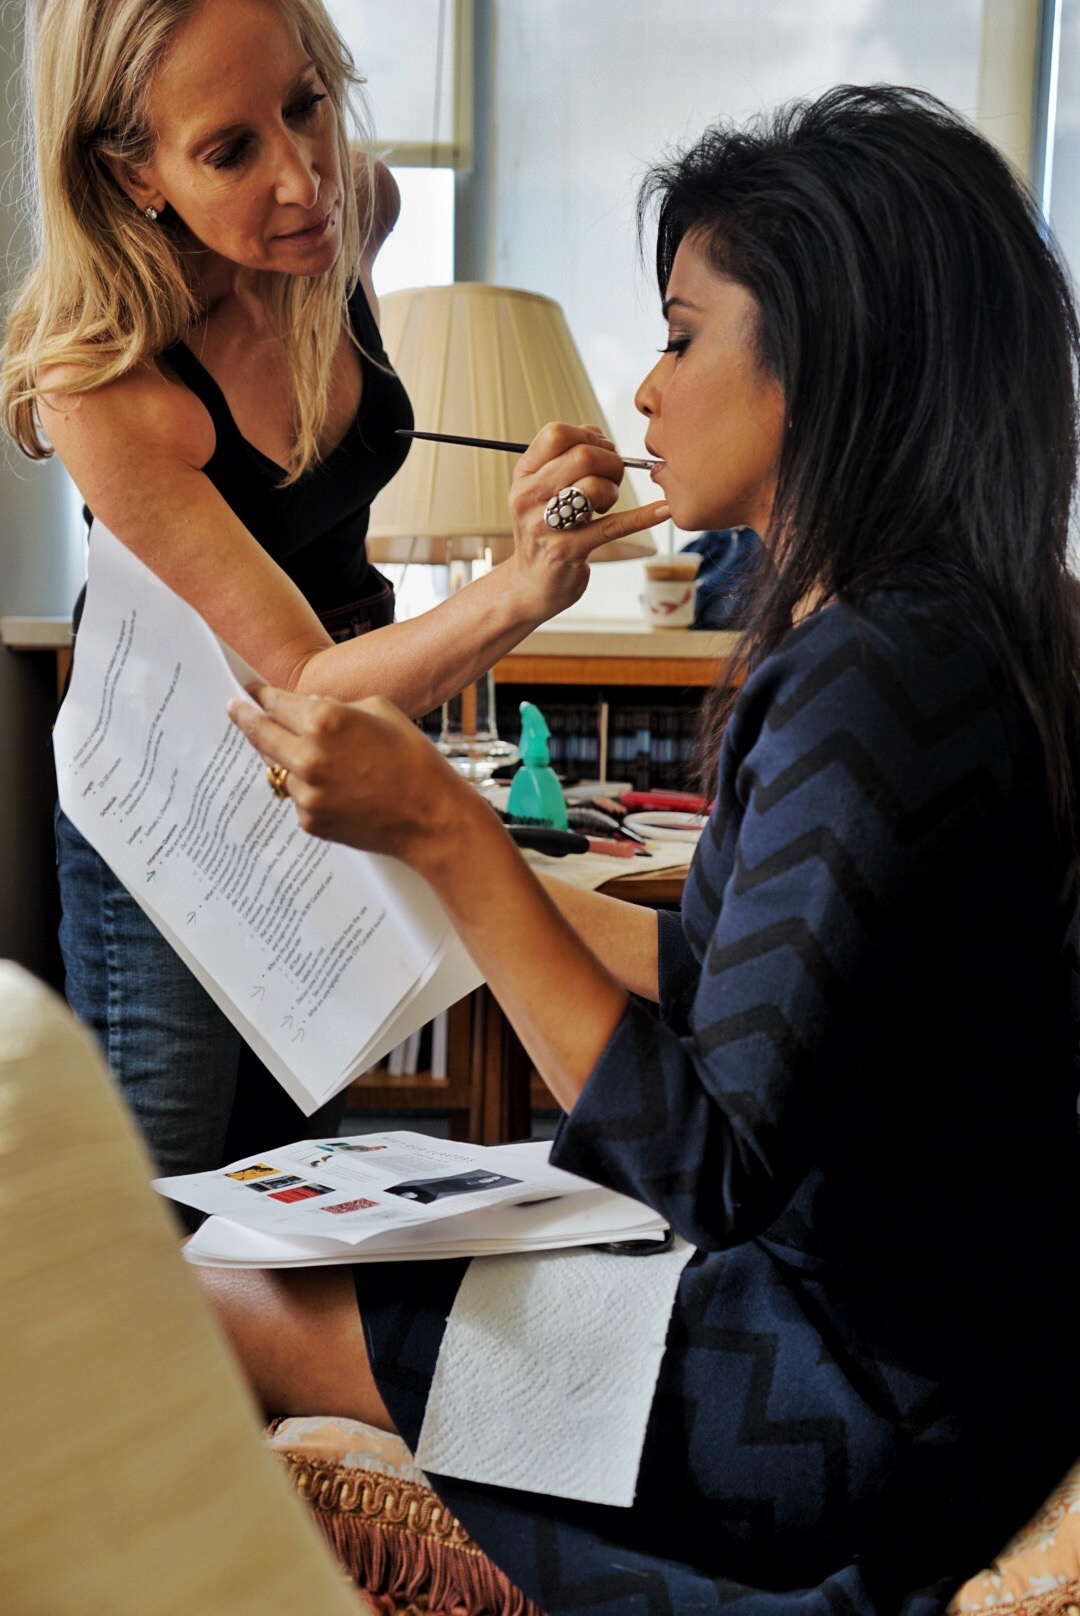 Hitha Herzog getting her makeup done by Laura Weinstein, while looking over notes for the Live show.